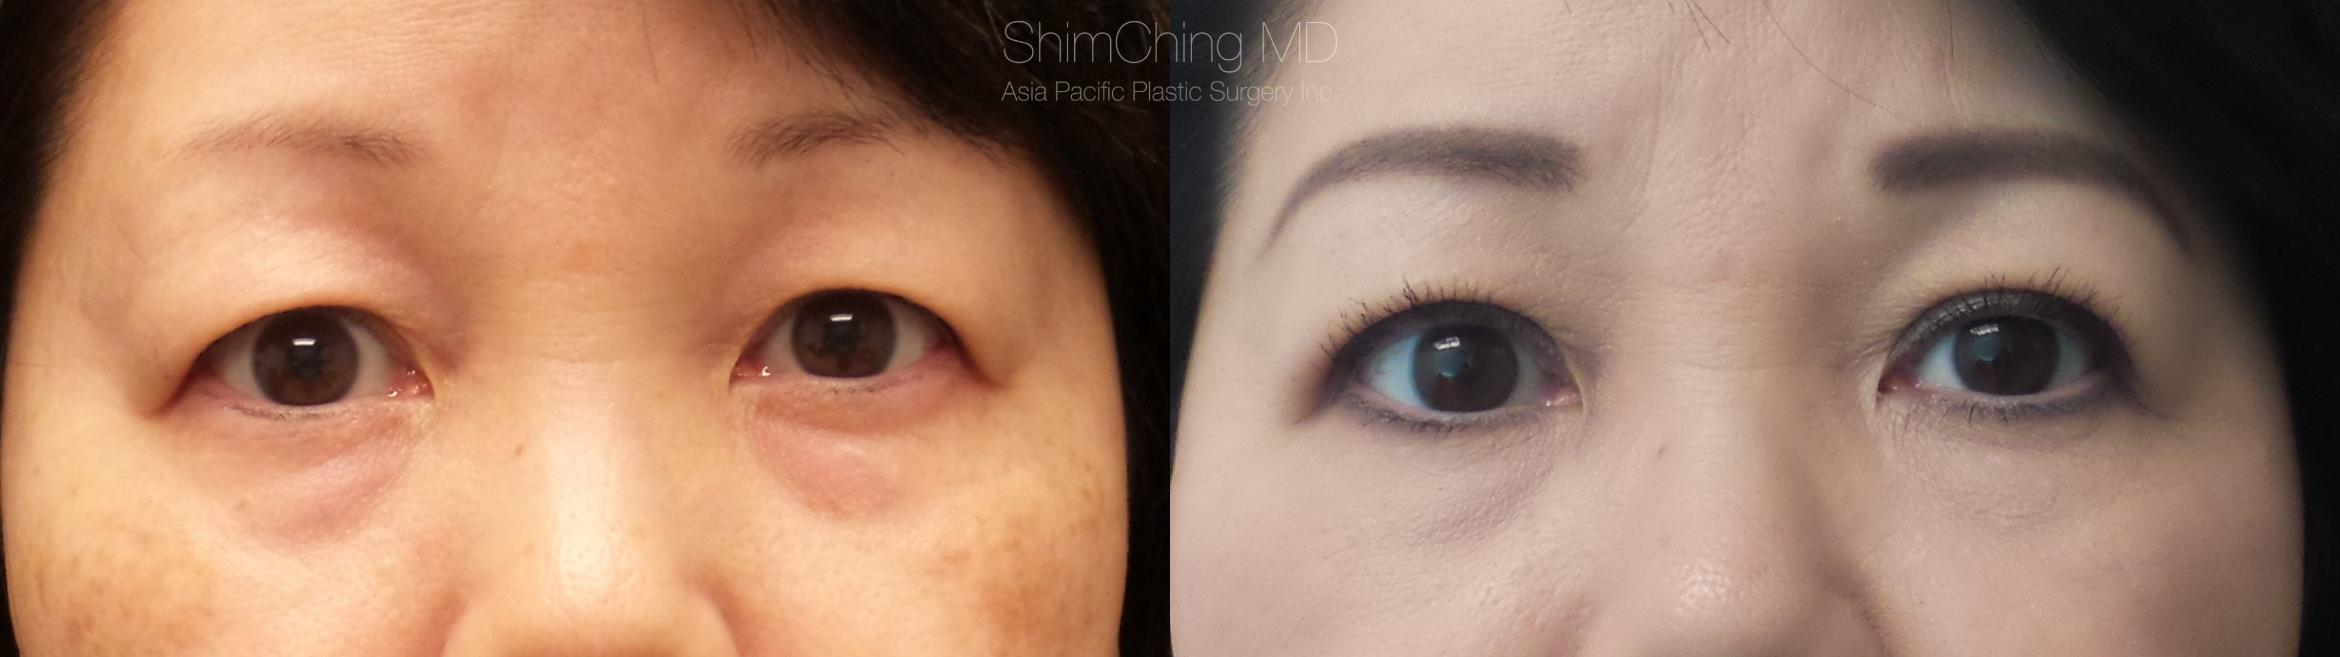 Asian Eyelid Case 282 Before & After Front | Honolulu, HI | Shim Ching, MD: Asia Pacific Plastic Surgery